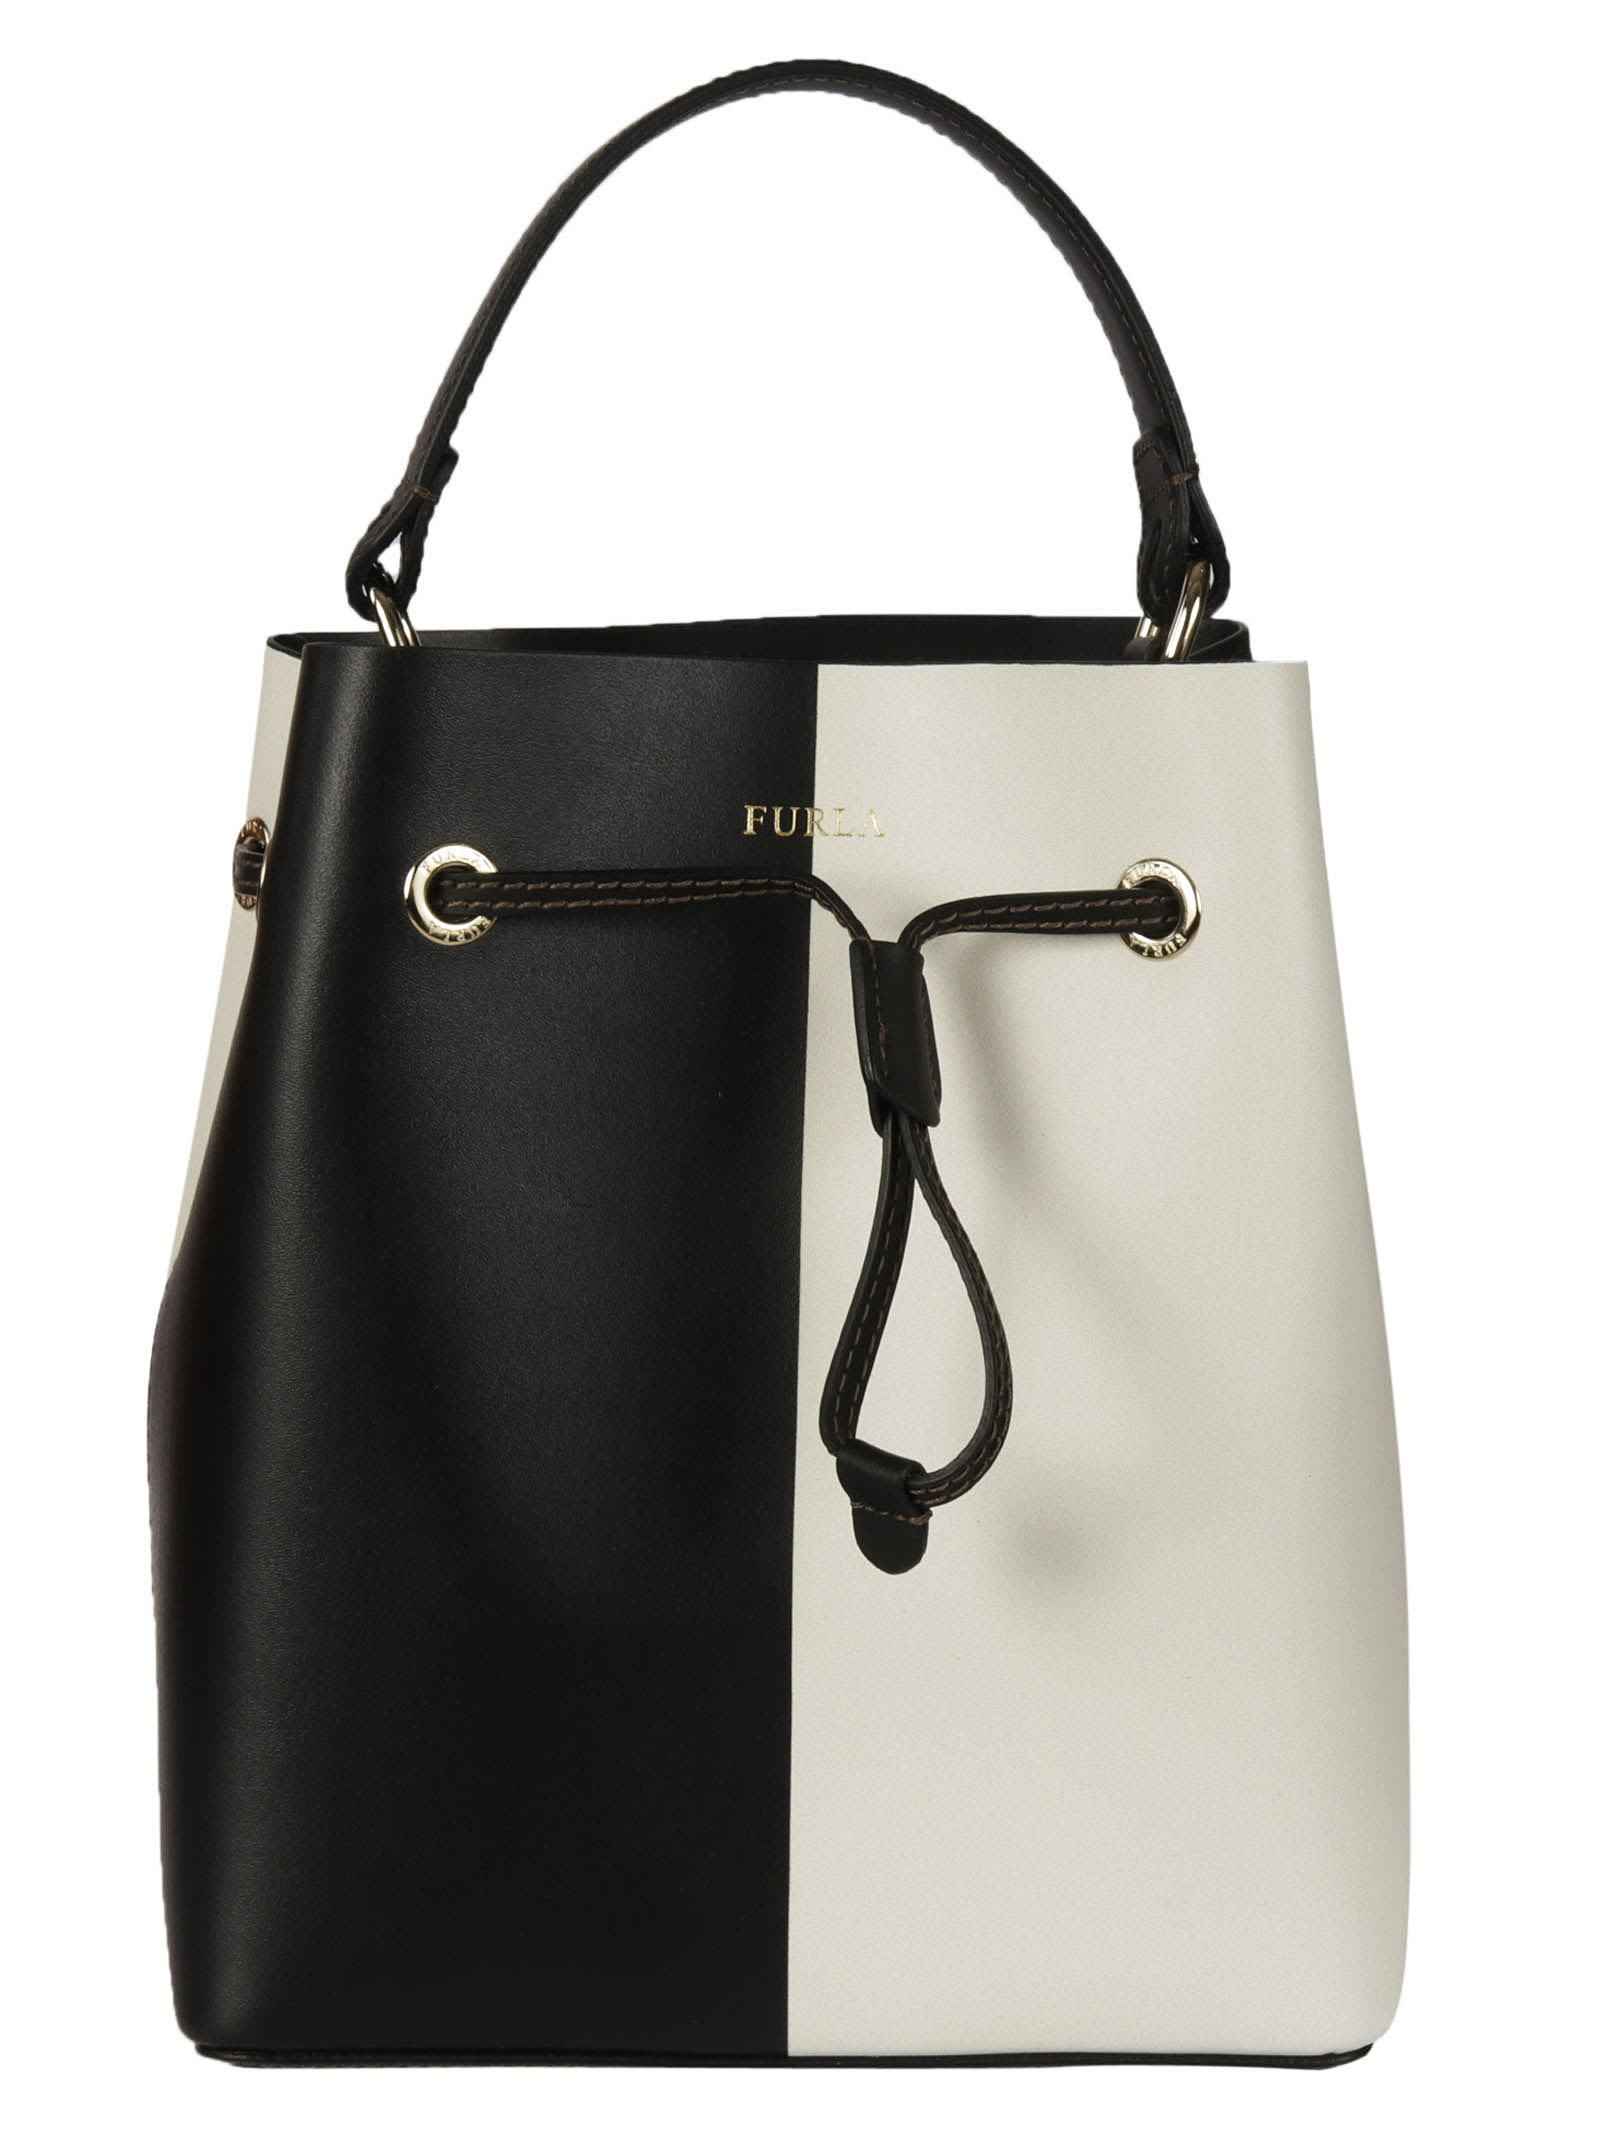 Furla Stacy Tote